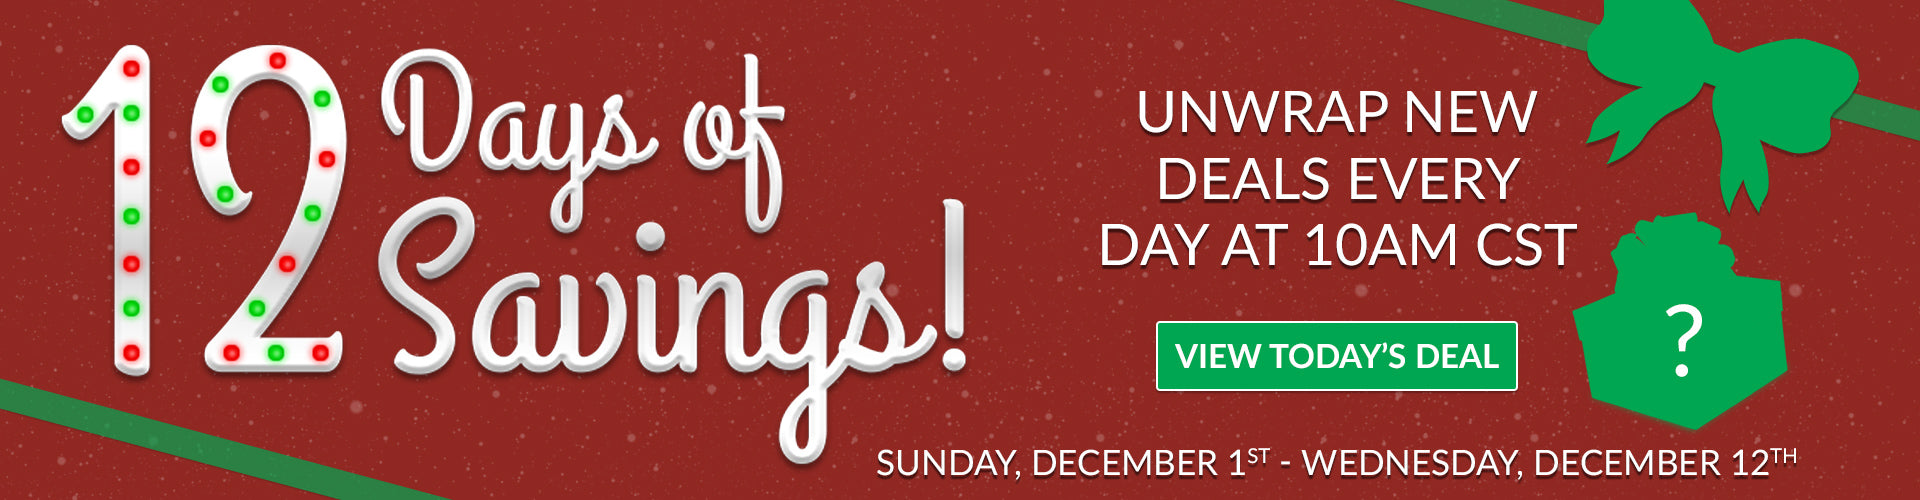 12 Days of Savings - Unwrap New Deals Every Day at 10 AM - ends Thursday, December 13th at 10:00am CST